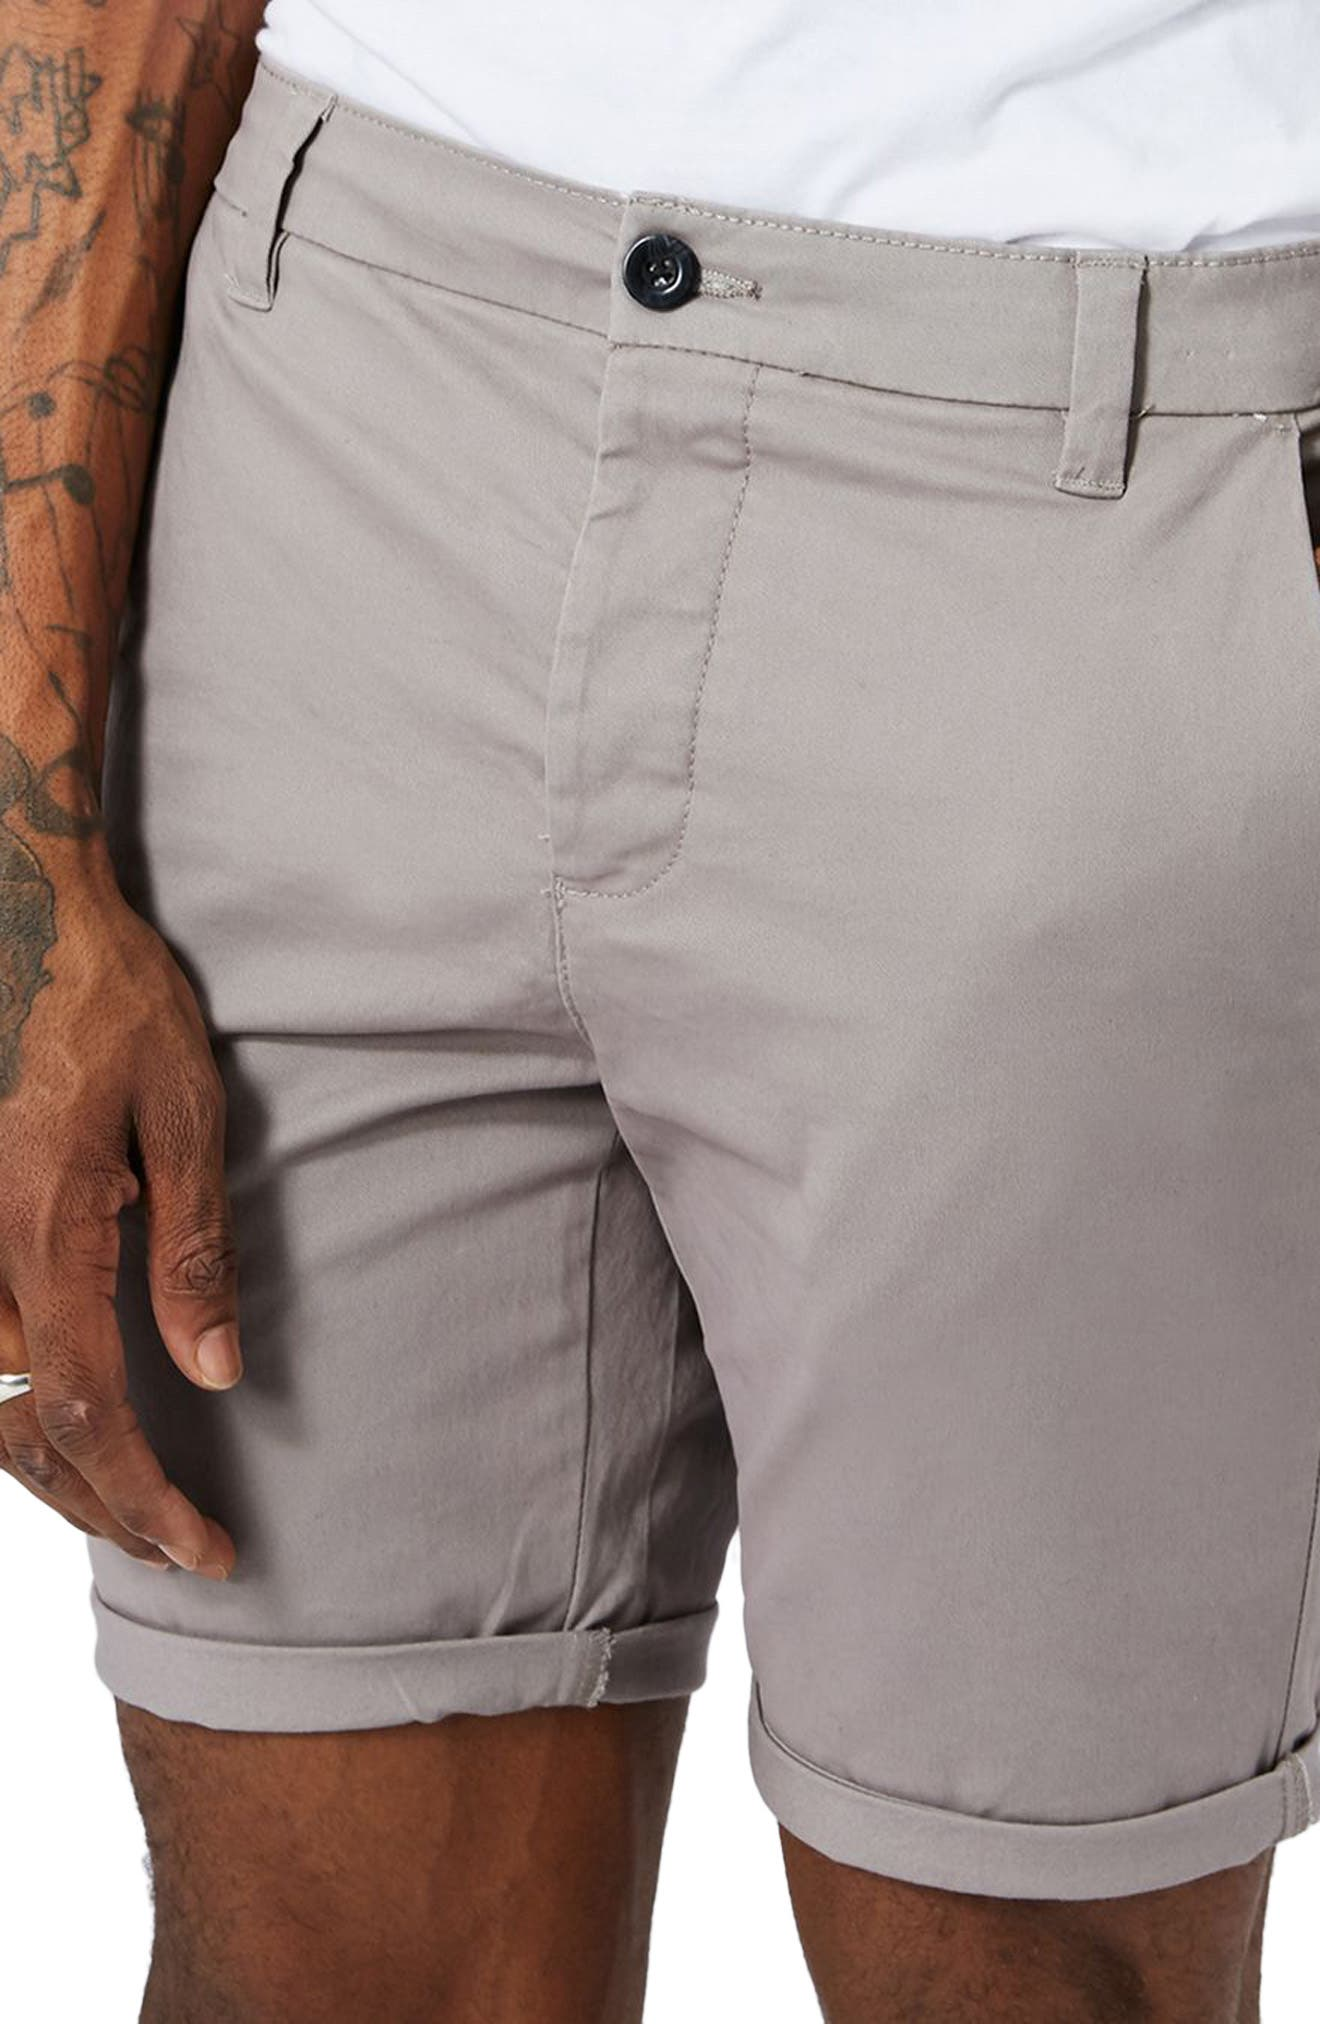 Stretch Skinny Fit Chino Shorts,                             Alternate thumbnail 3, color,                             030